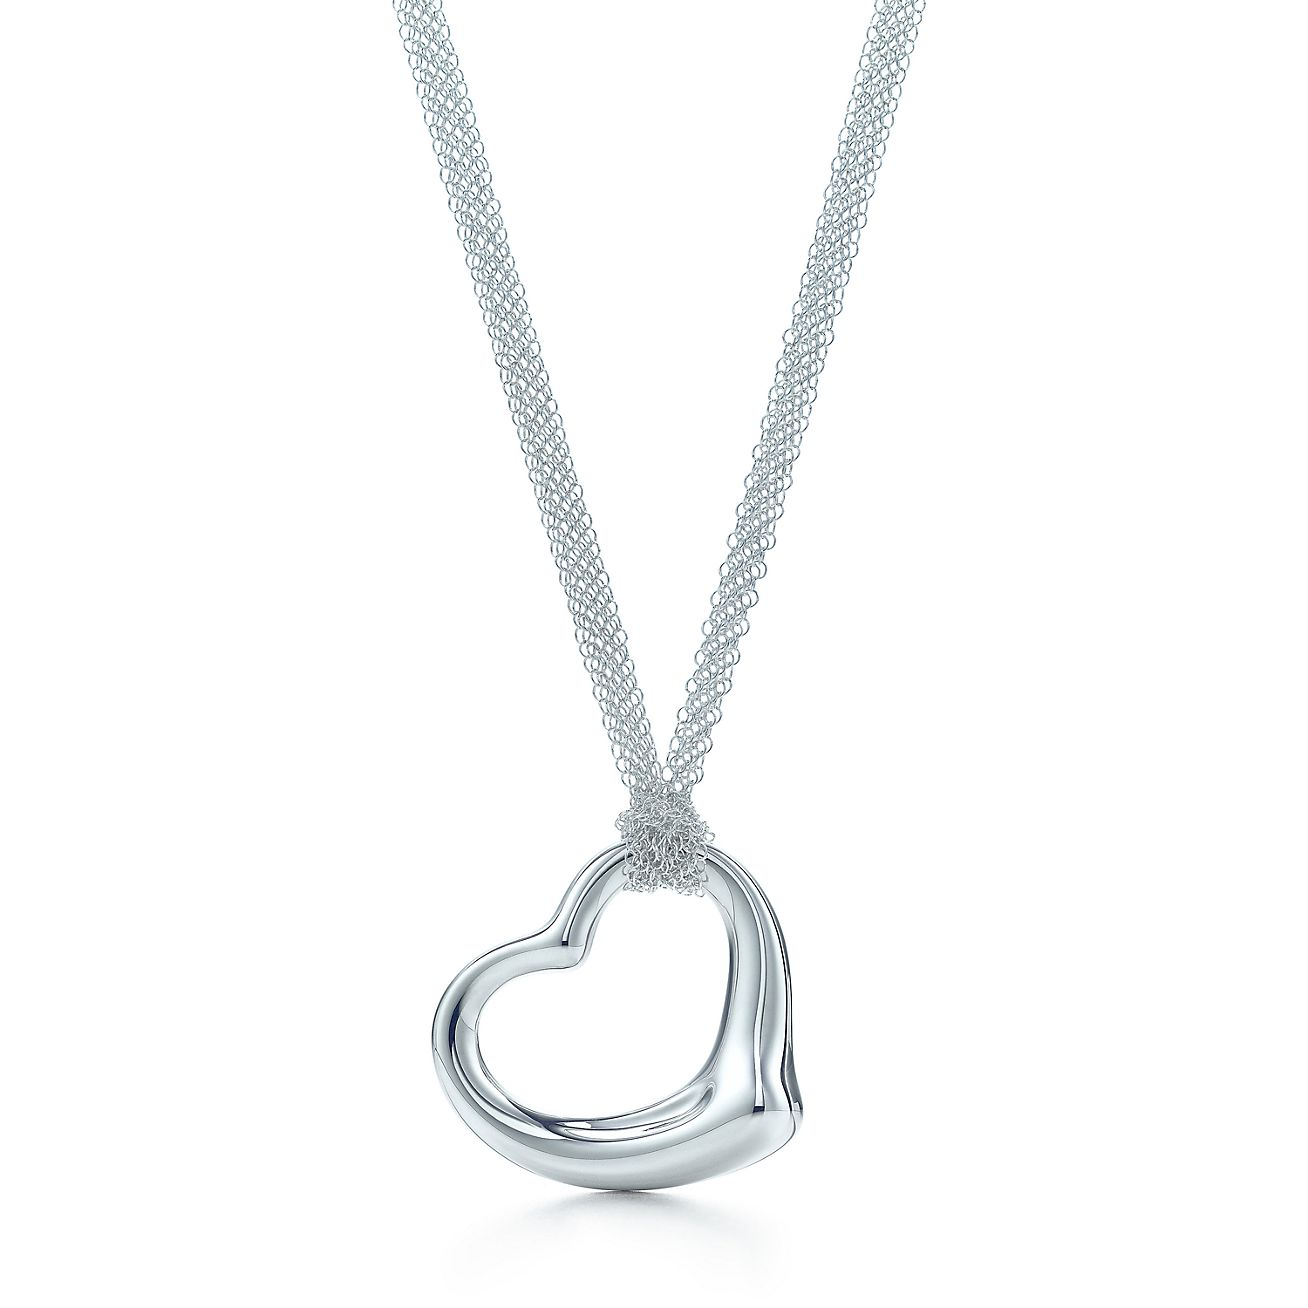 notonthehighstreet jewellery product jandsjewellery double heart by necklace original j s com